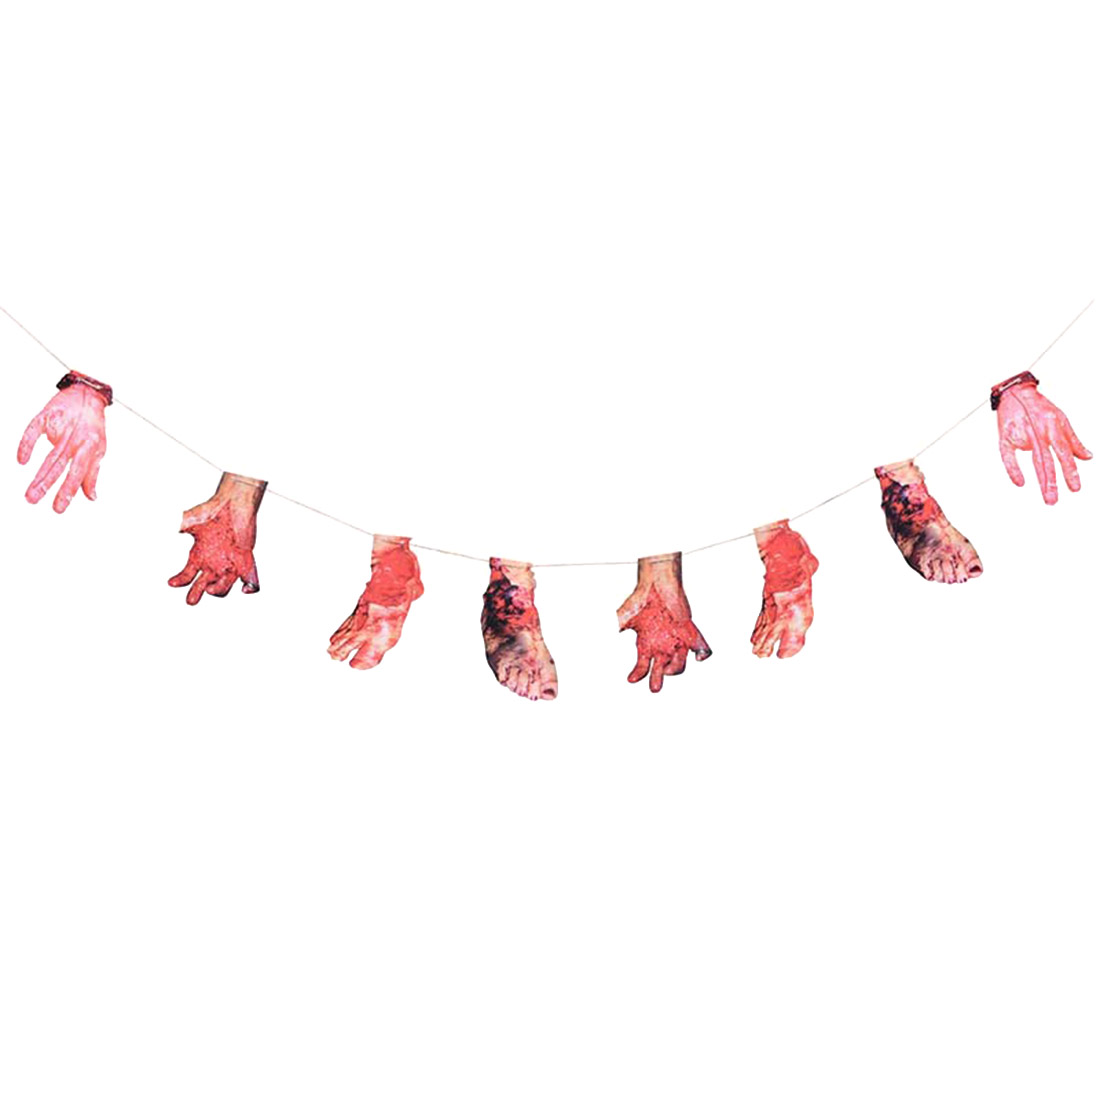 1pc Horror Halloween Blood Hand Foot Halloween Party Scary